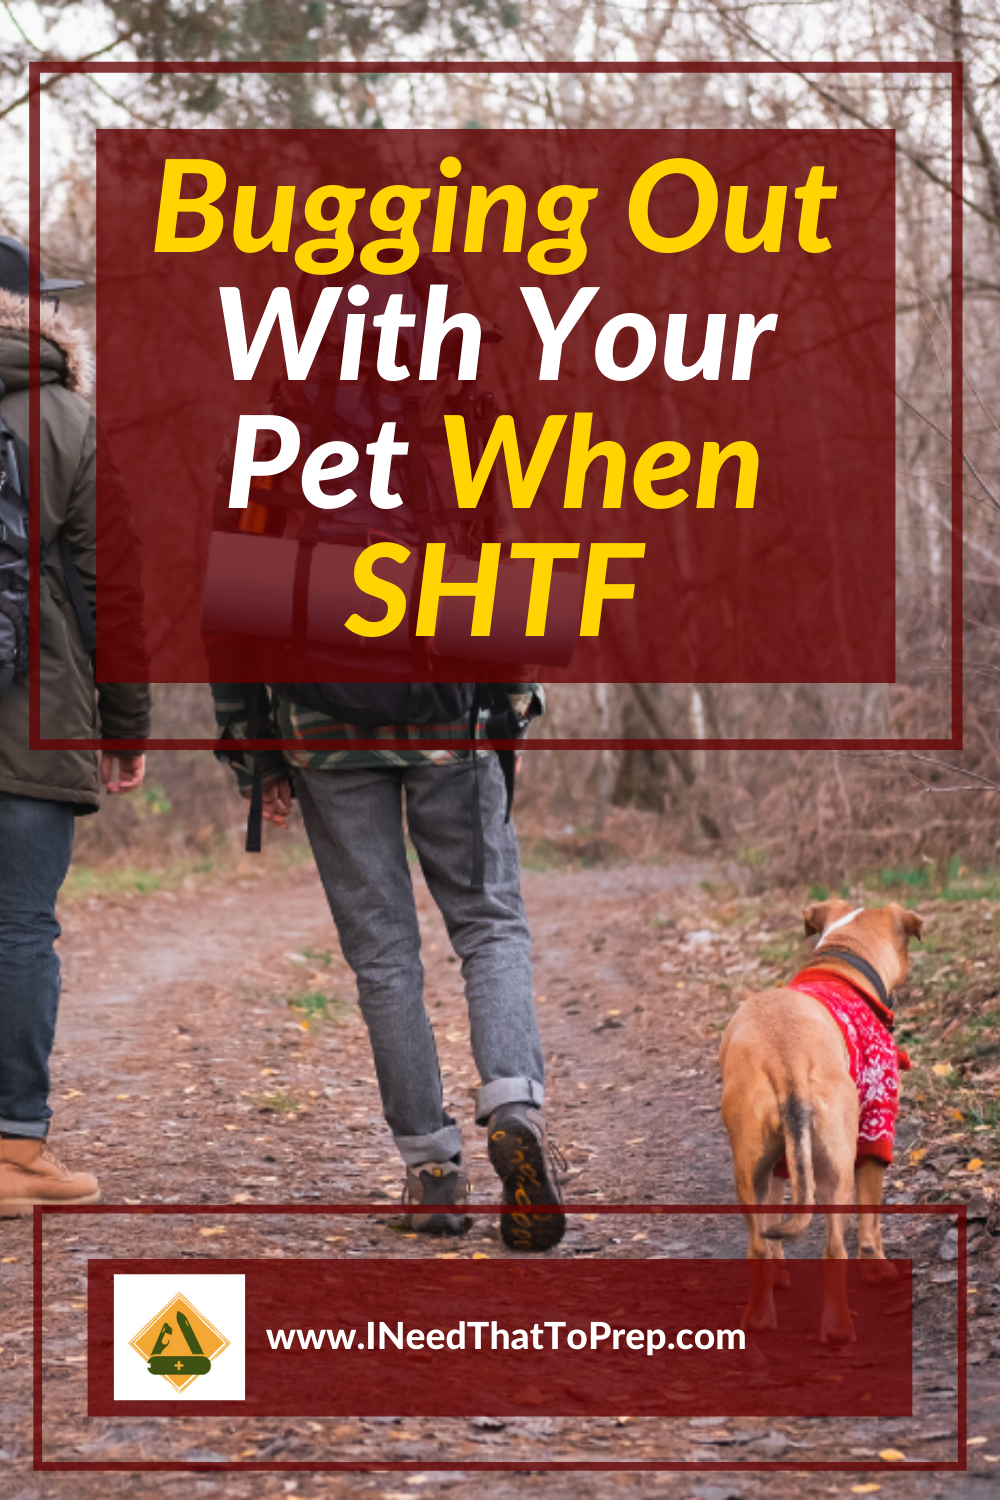 Do you have your pets prepared if SHTF?  Learn some of the basics of getting your pet ready to leave at a moment's notice. #preppers #prepping #SHTF #preppingpets #preppingdogs #dogs #emergencypreparedness #disasterpreparedness #shtf #bugout #buggingout #survival #survivalist #lovedogs